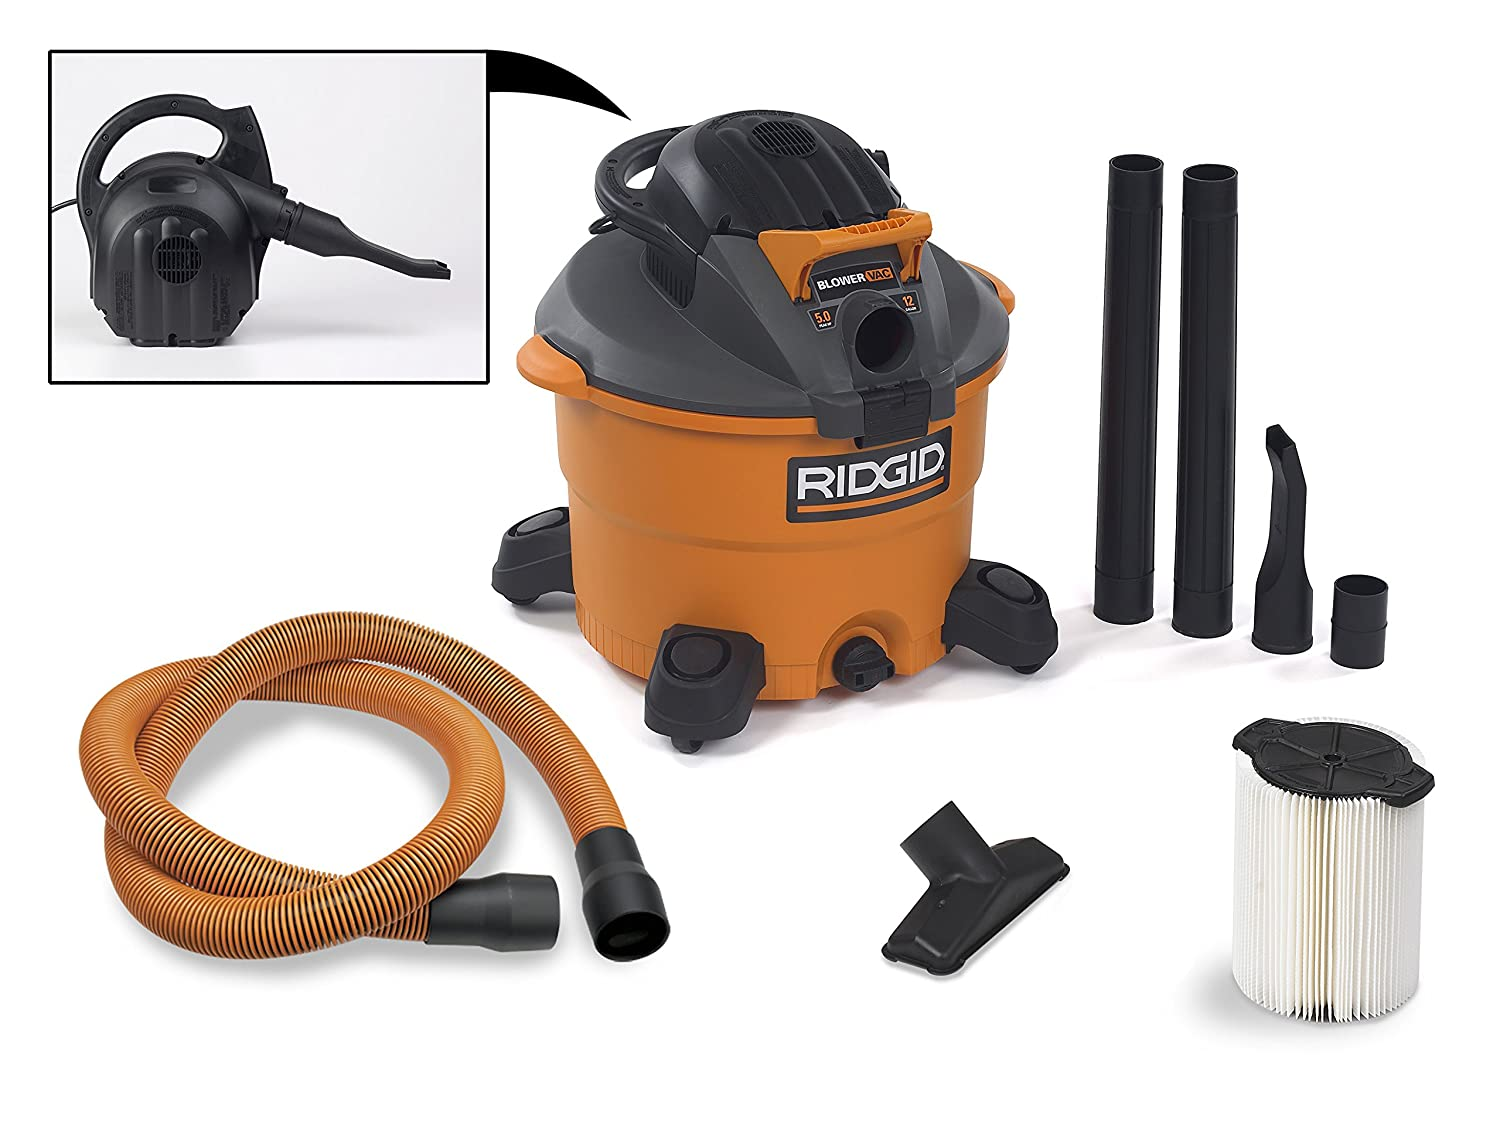 Charming Amazon.com: RIDGID Wet Dry Vacuums VAC1200 Heavy Duty Wet Dry Vacuum Cleaner  And Blower Vac, 12 Gallon, 5.0 Peak Horsepower Detachable Leaf Blower Vacuum  ...